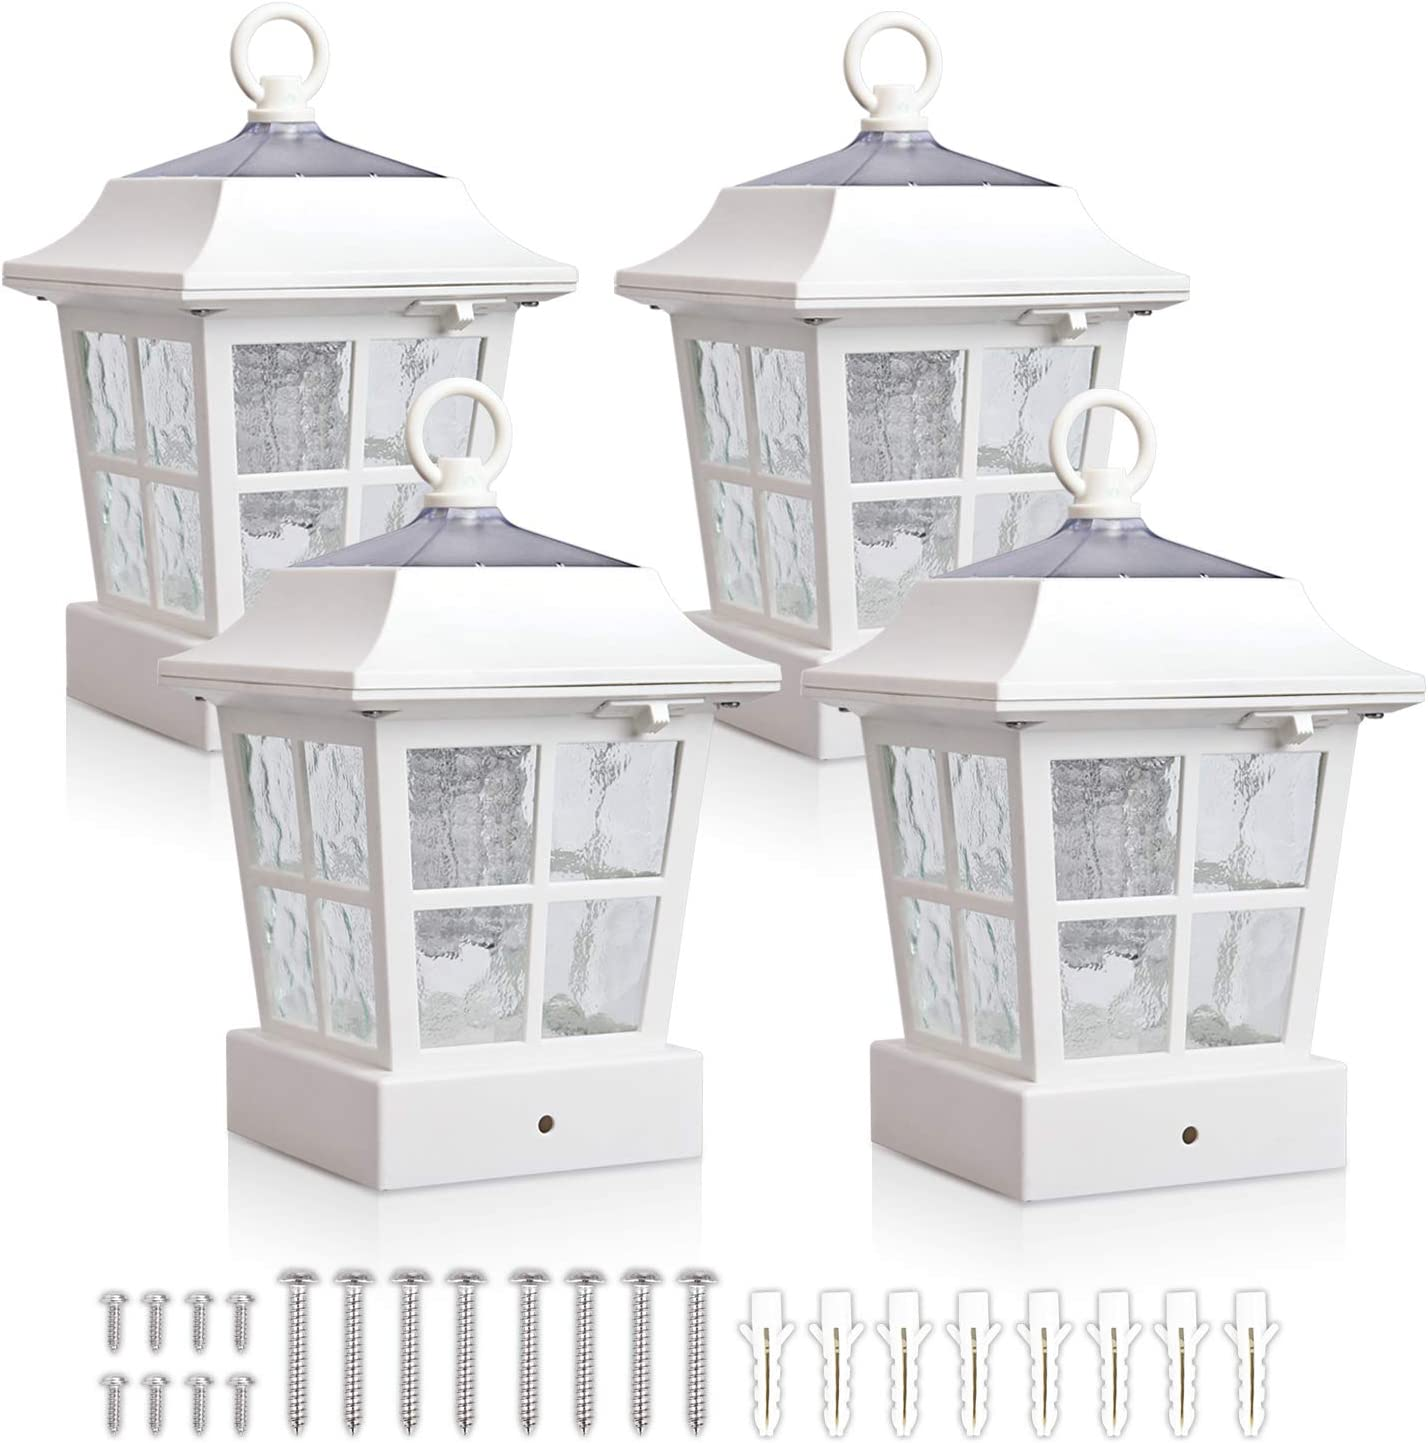 KMC Cheap mail order specialty store Special sale item LIGHTING KT130QFX4W Solar Post Lights Cap